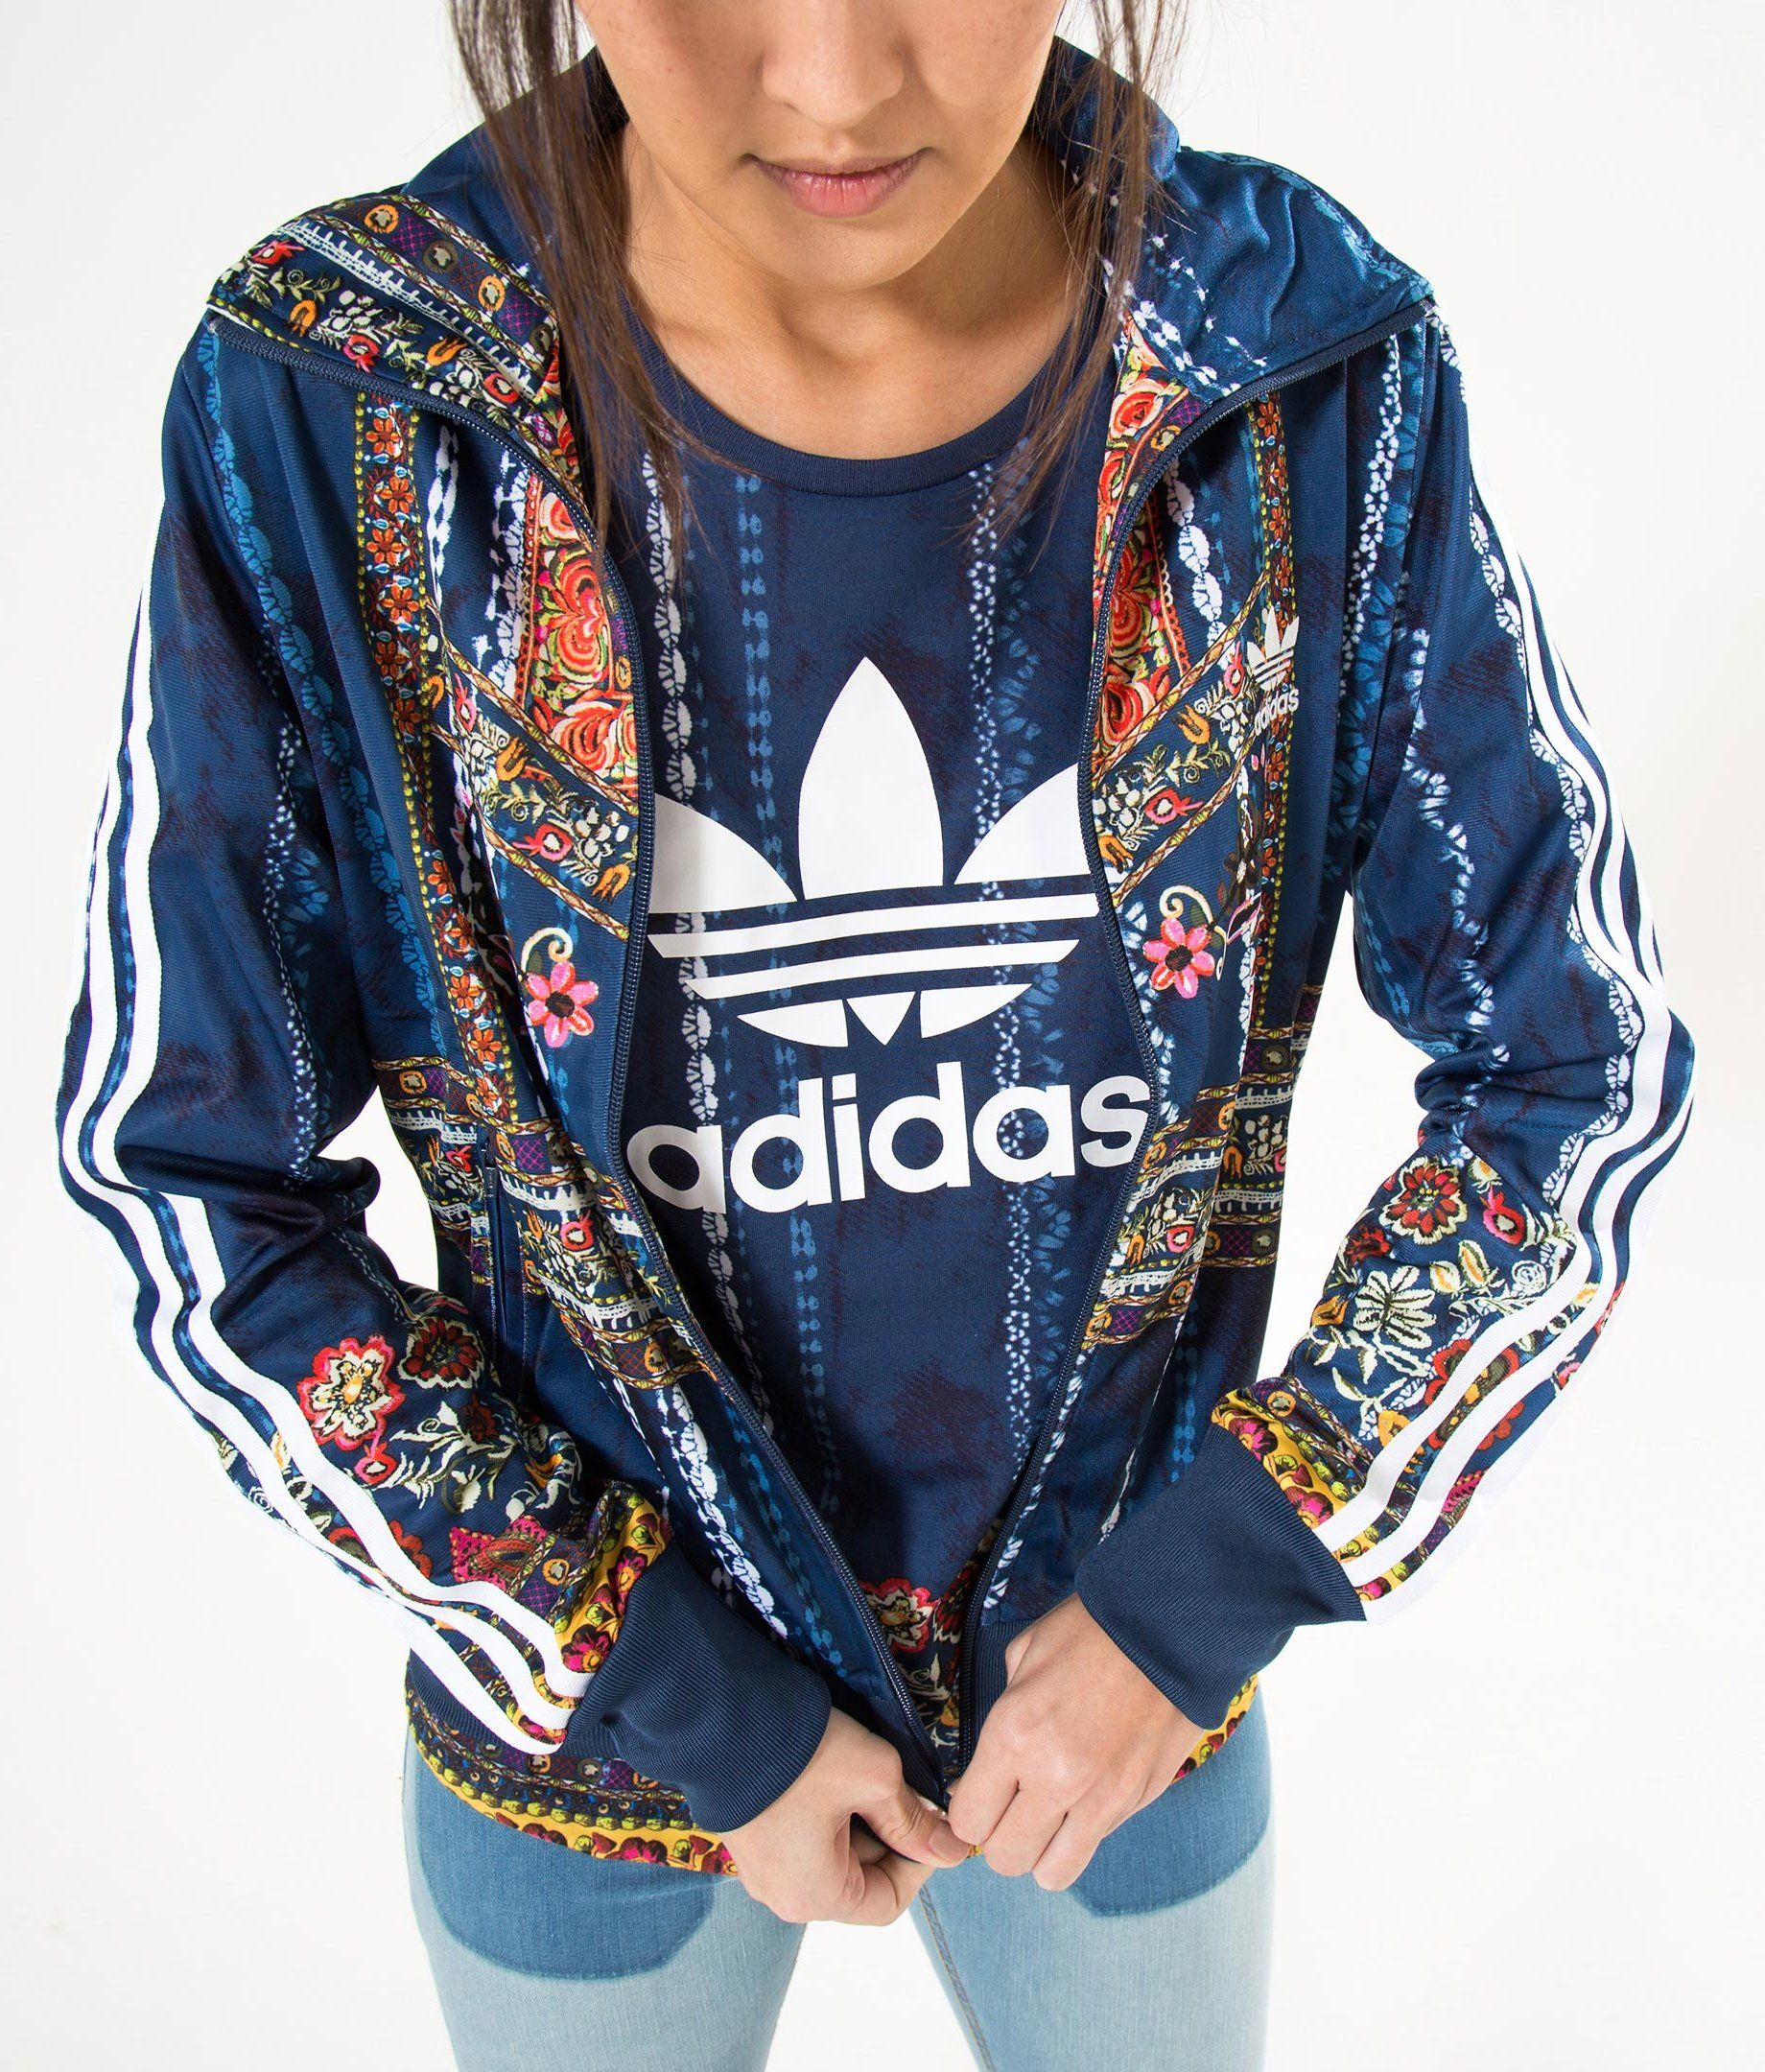 sports shoes 7a91f b58c6 Pin by Gabriella Cocchioni on style   Adidas jacket outfit, Adidas outfit,  Adidas jacket